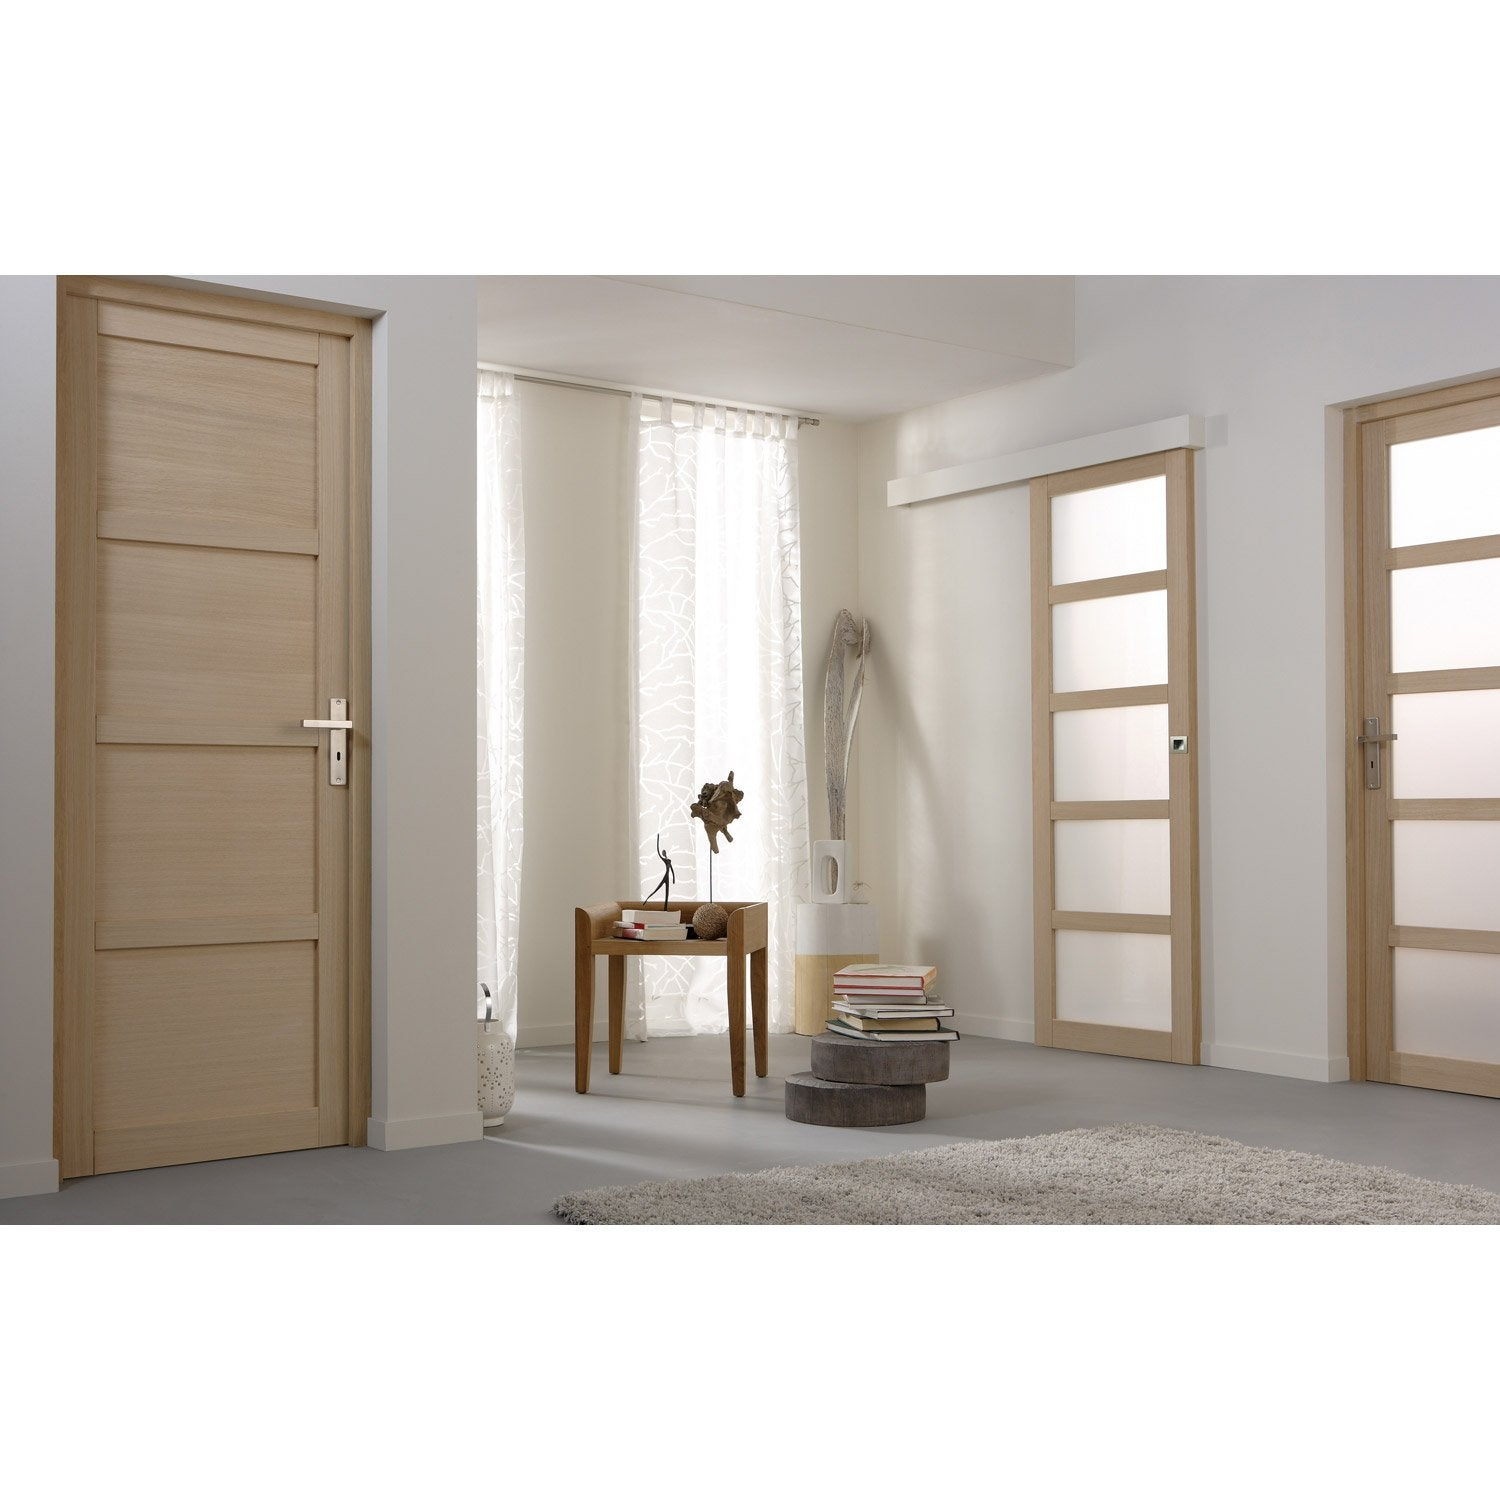 Ensemble porte coulissante paris plaqu ch ne avec le rail jazz 2 en aluminium leroy merlin - Leroy merlin paris 13 ...